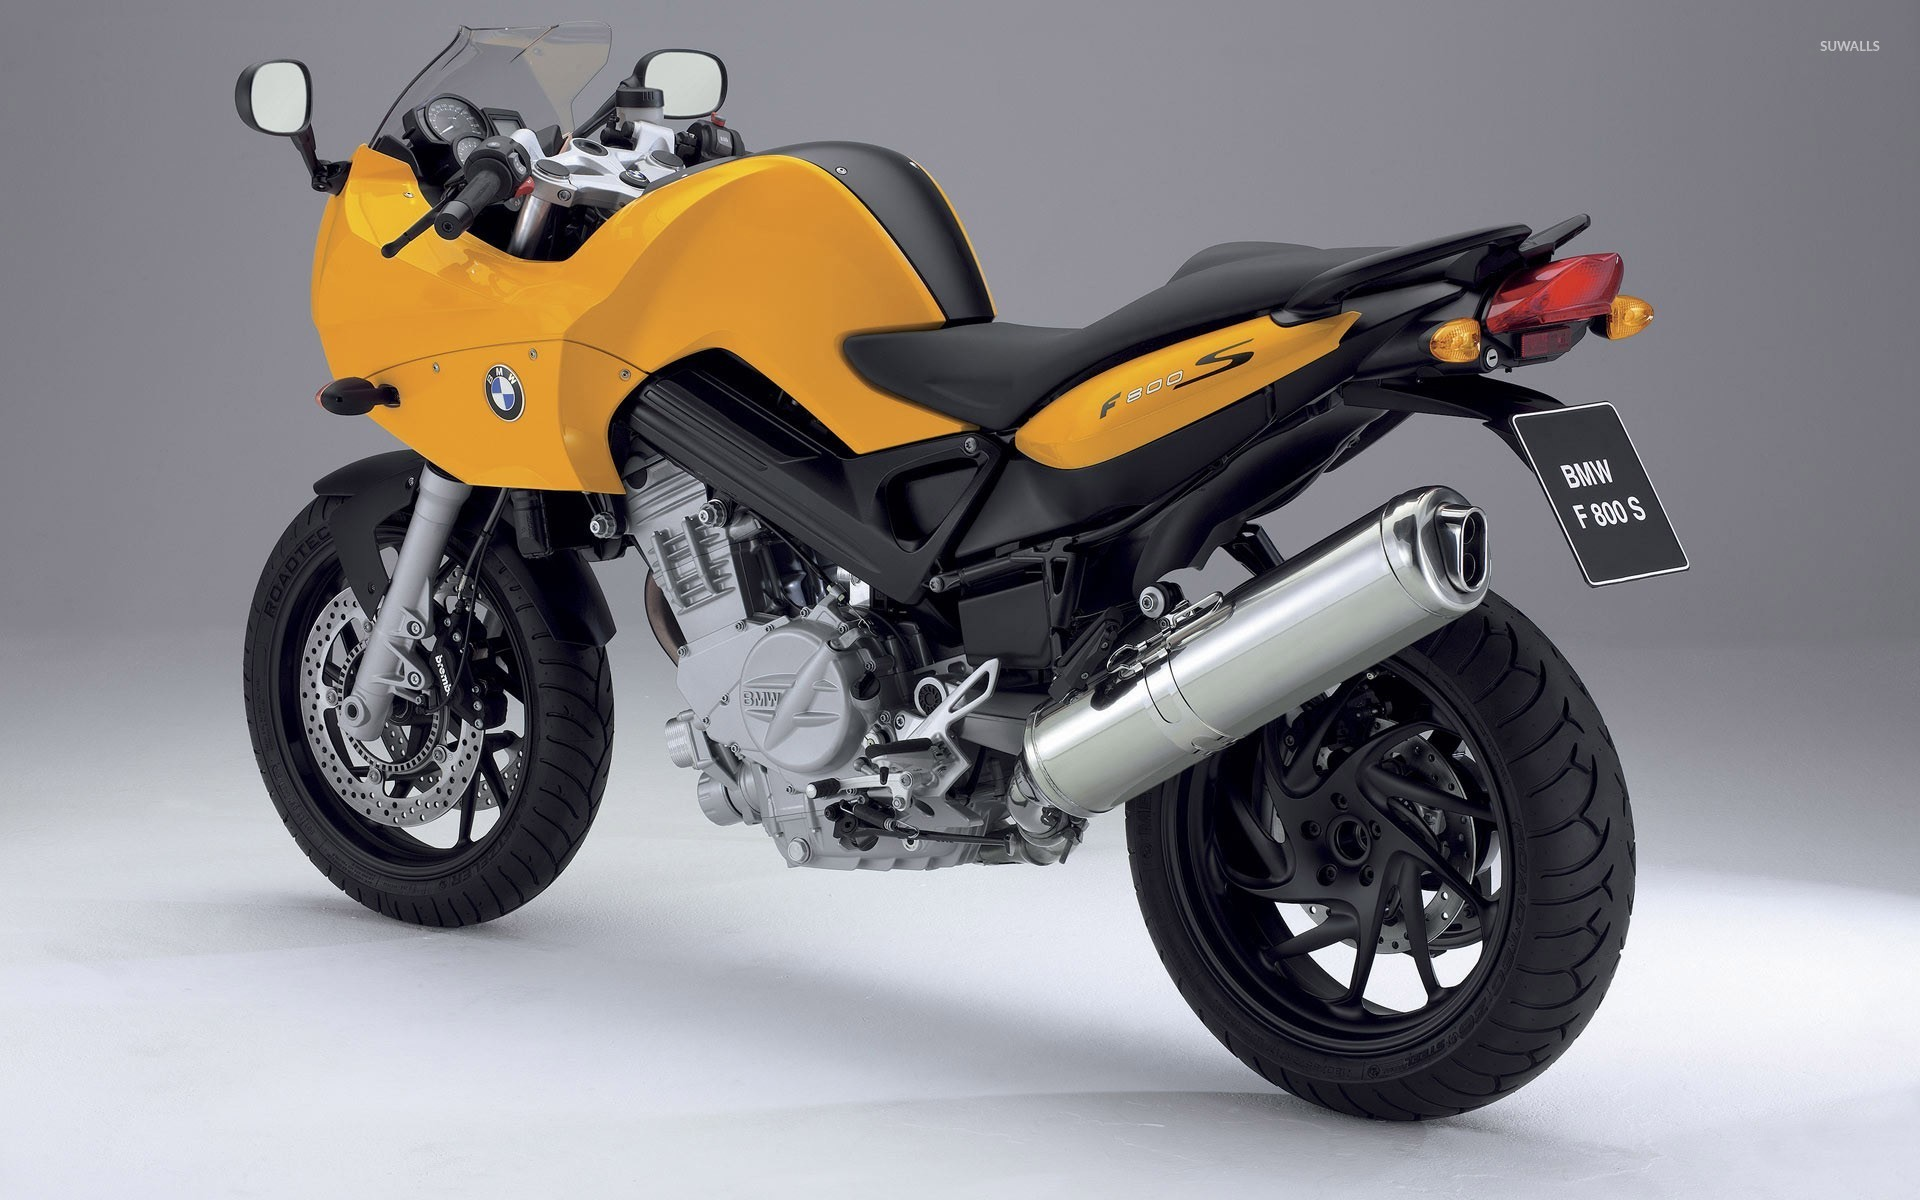 Bmw F800s Wallpaper Motorcycle Wallpapers 11215